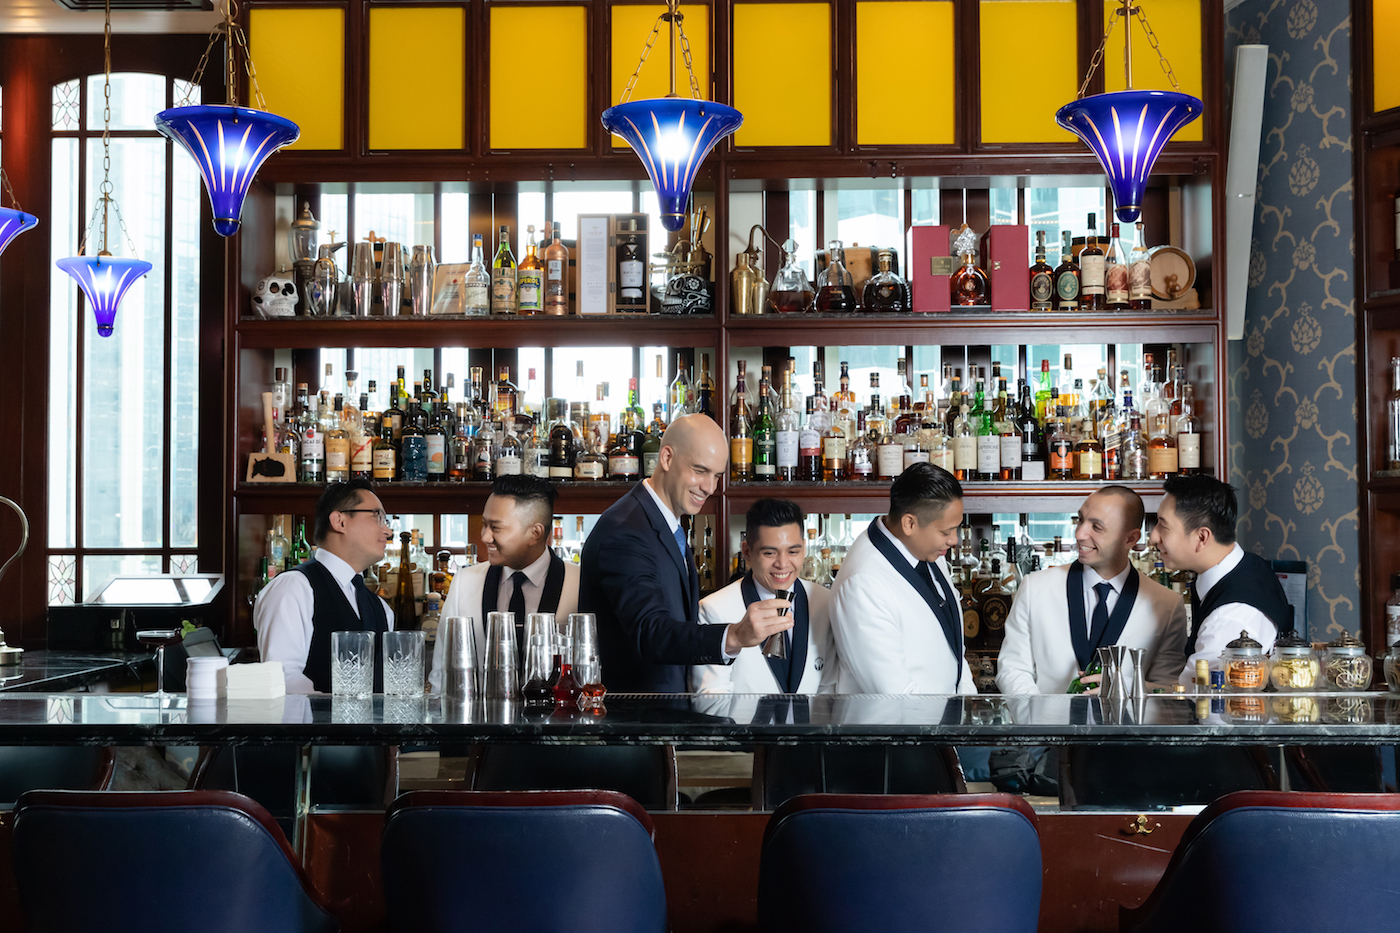 Find out why Lobster Bar and Grill at Island Shangri-La is one of our go-to cocktail spots